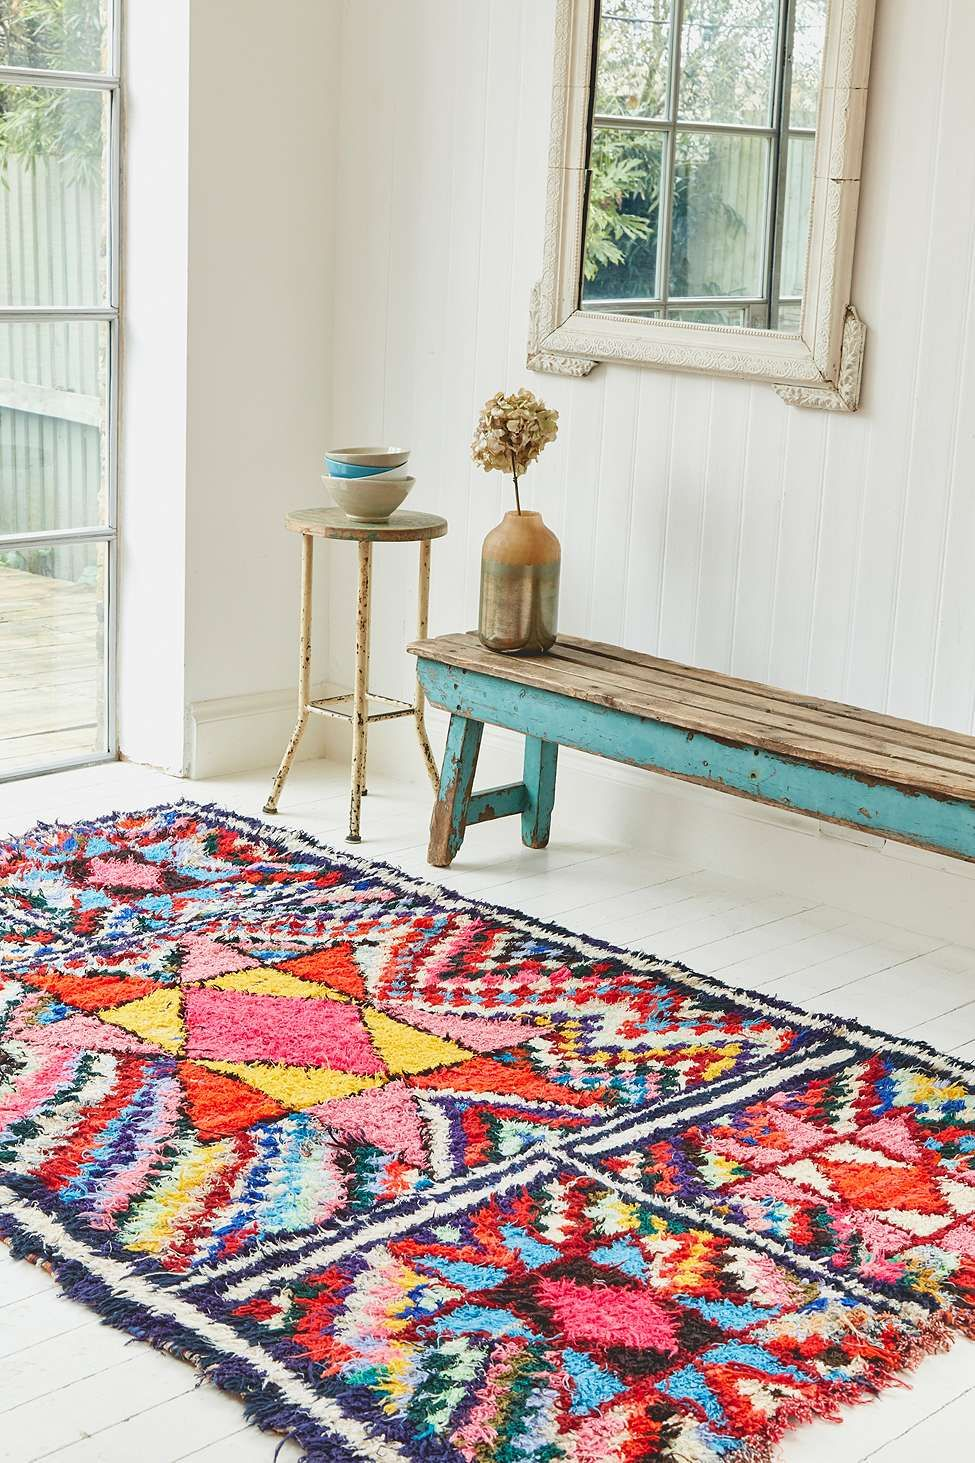 One Of A Kind Boucherouite 8x5 Rug Colorful Moroccan Rugs Rug Decor Boucherouite Rug